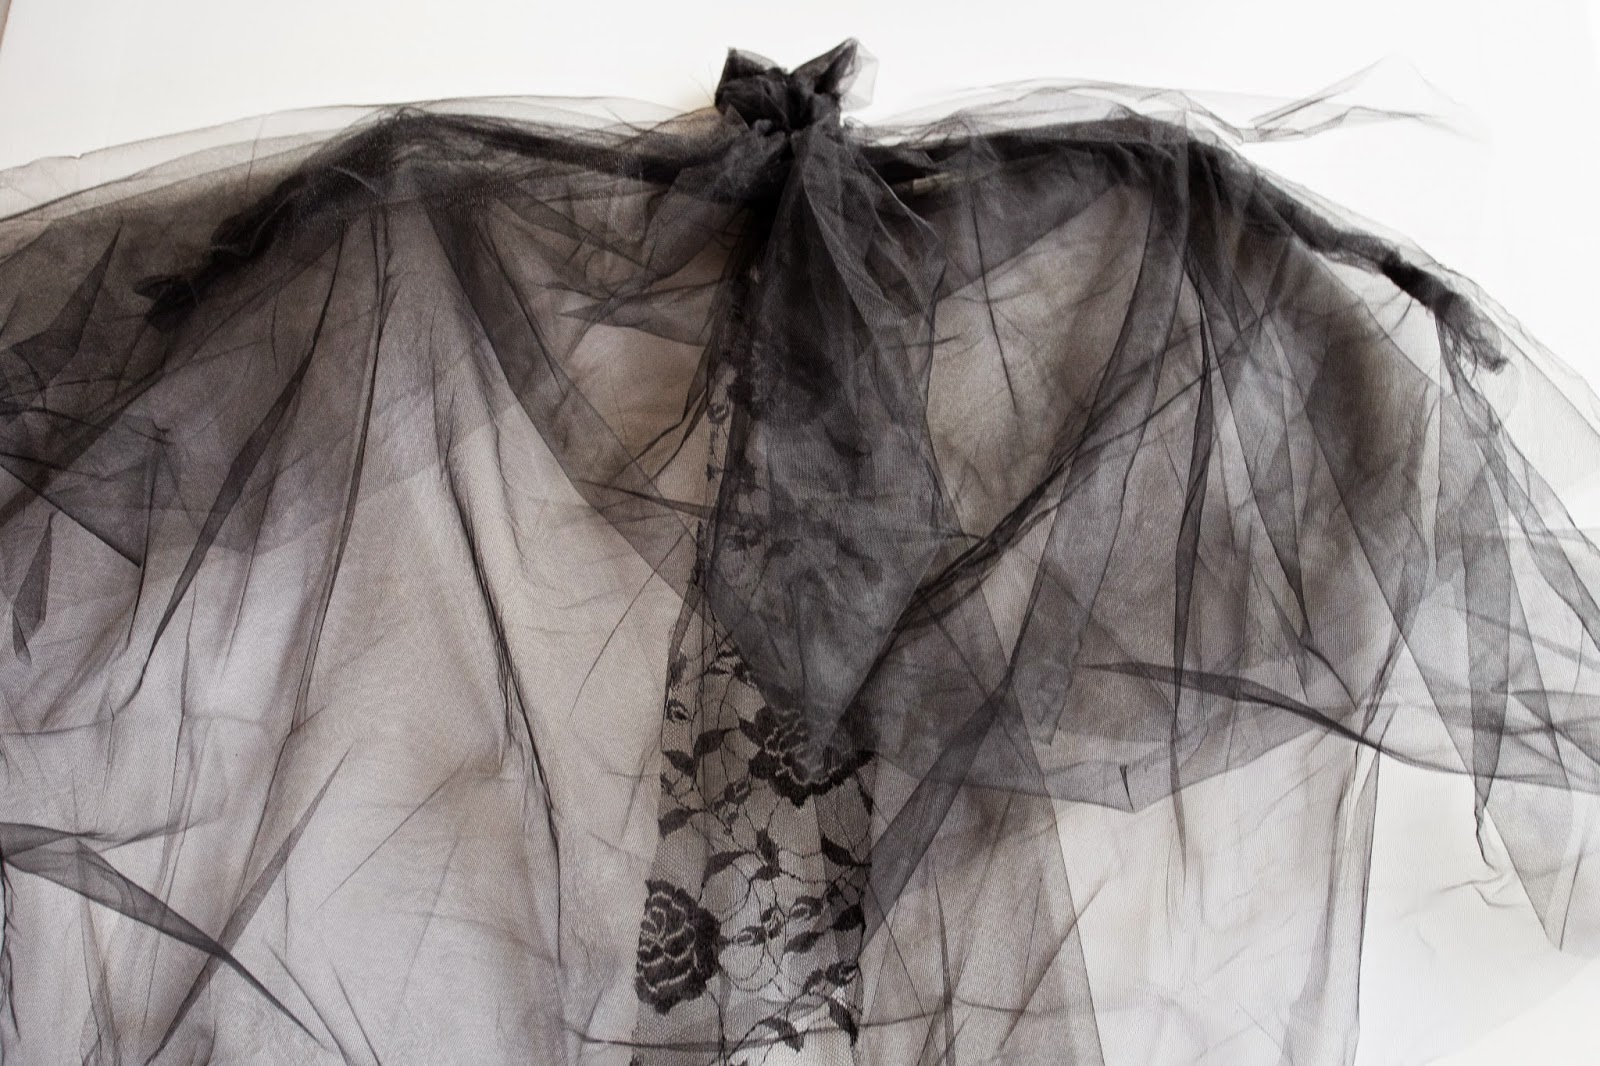 do it yourself divas: DIY: Tulle Bat How To Wire A Bat Yourself on wire hat, wire dream catcher, wire bee, wire bit, wire frog, wire octopus, wire lizard,